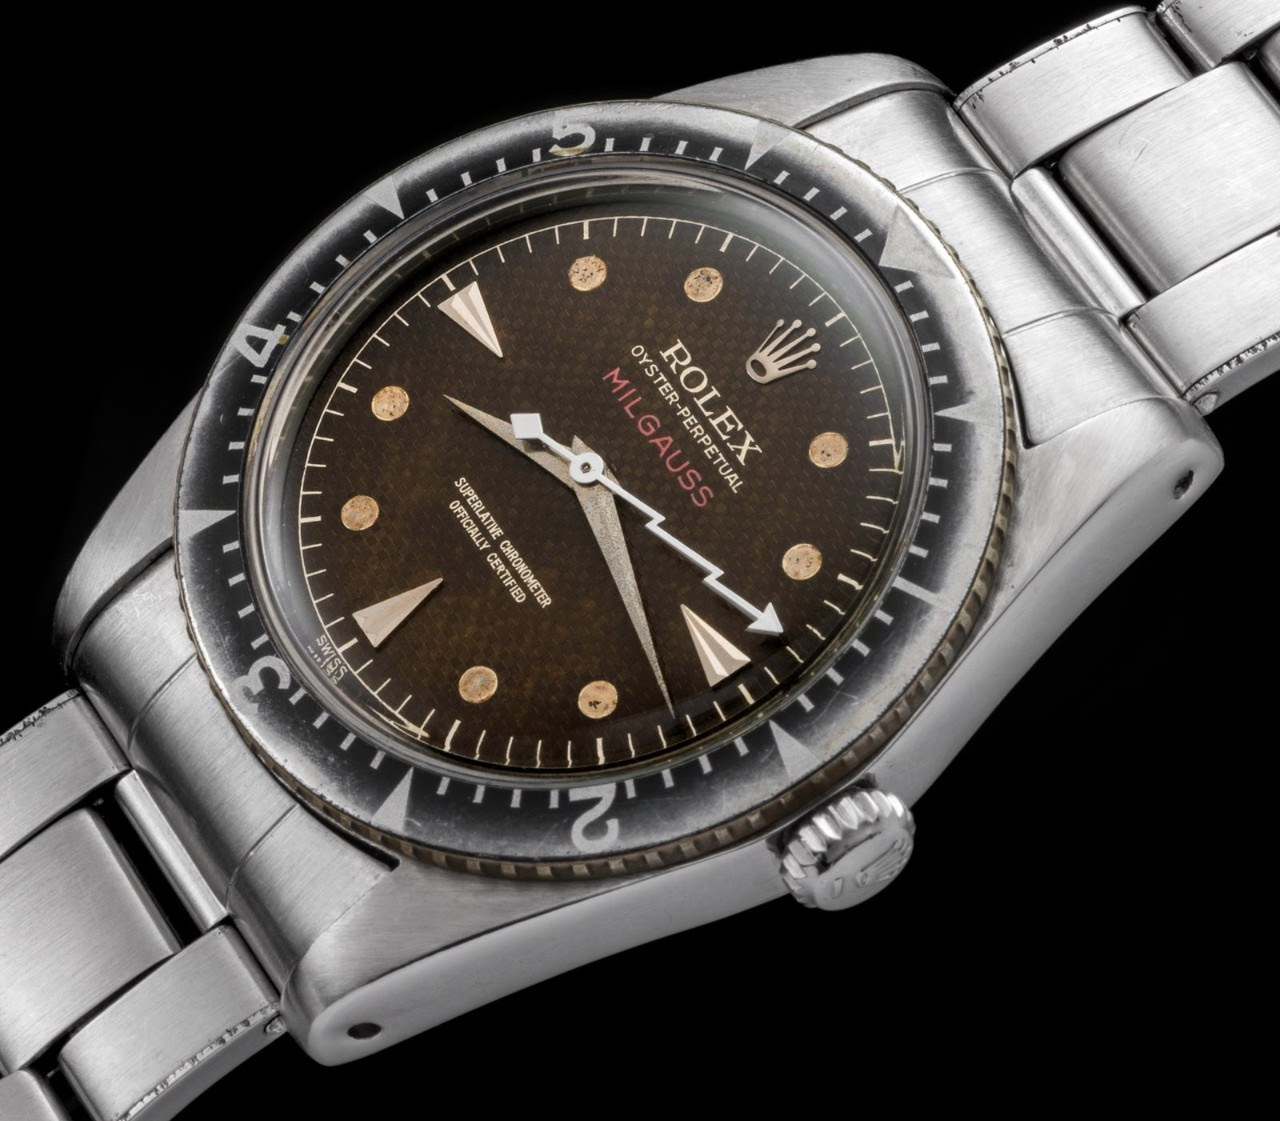 Rolex , Rolex Milgauss 6541 A Cult Watch in the Vintage